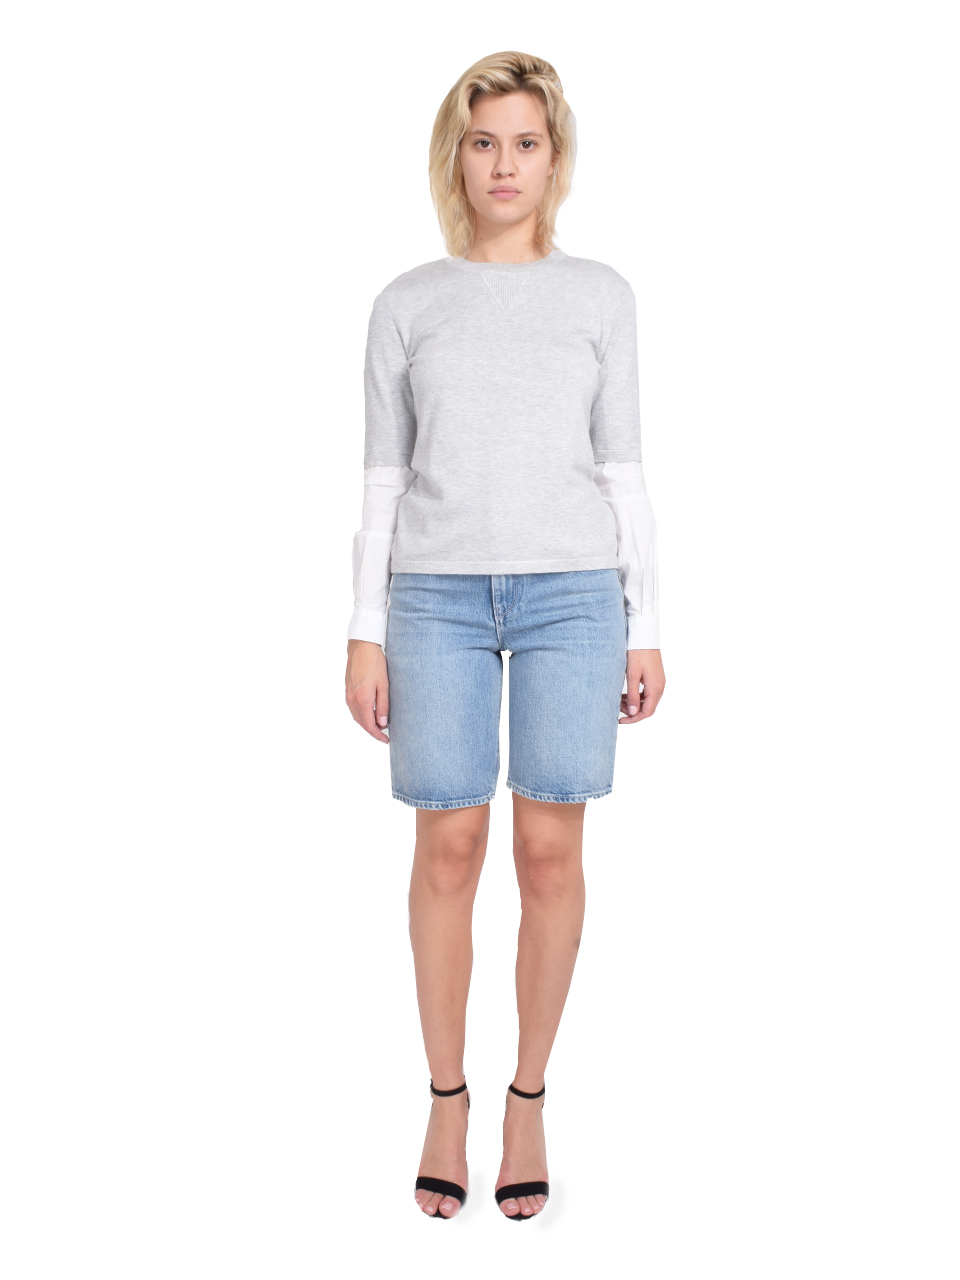 RtA Jami Baggy Short in Gallo Blue Full Outfit